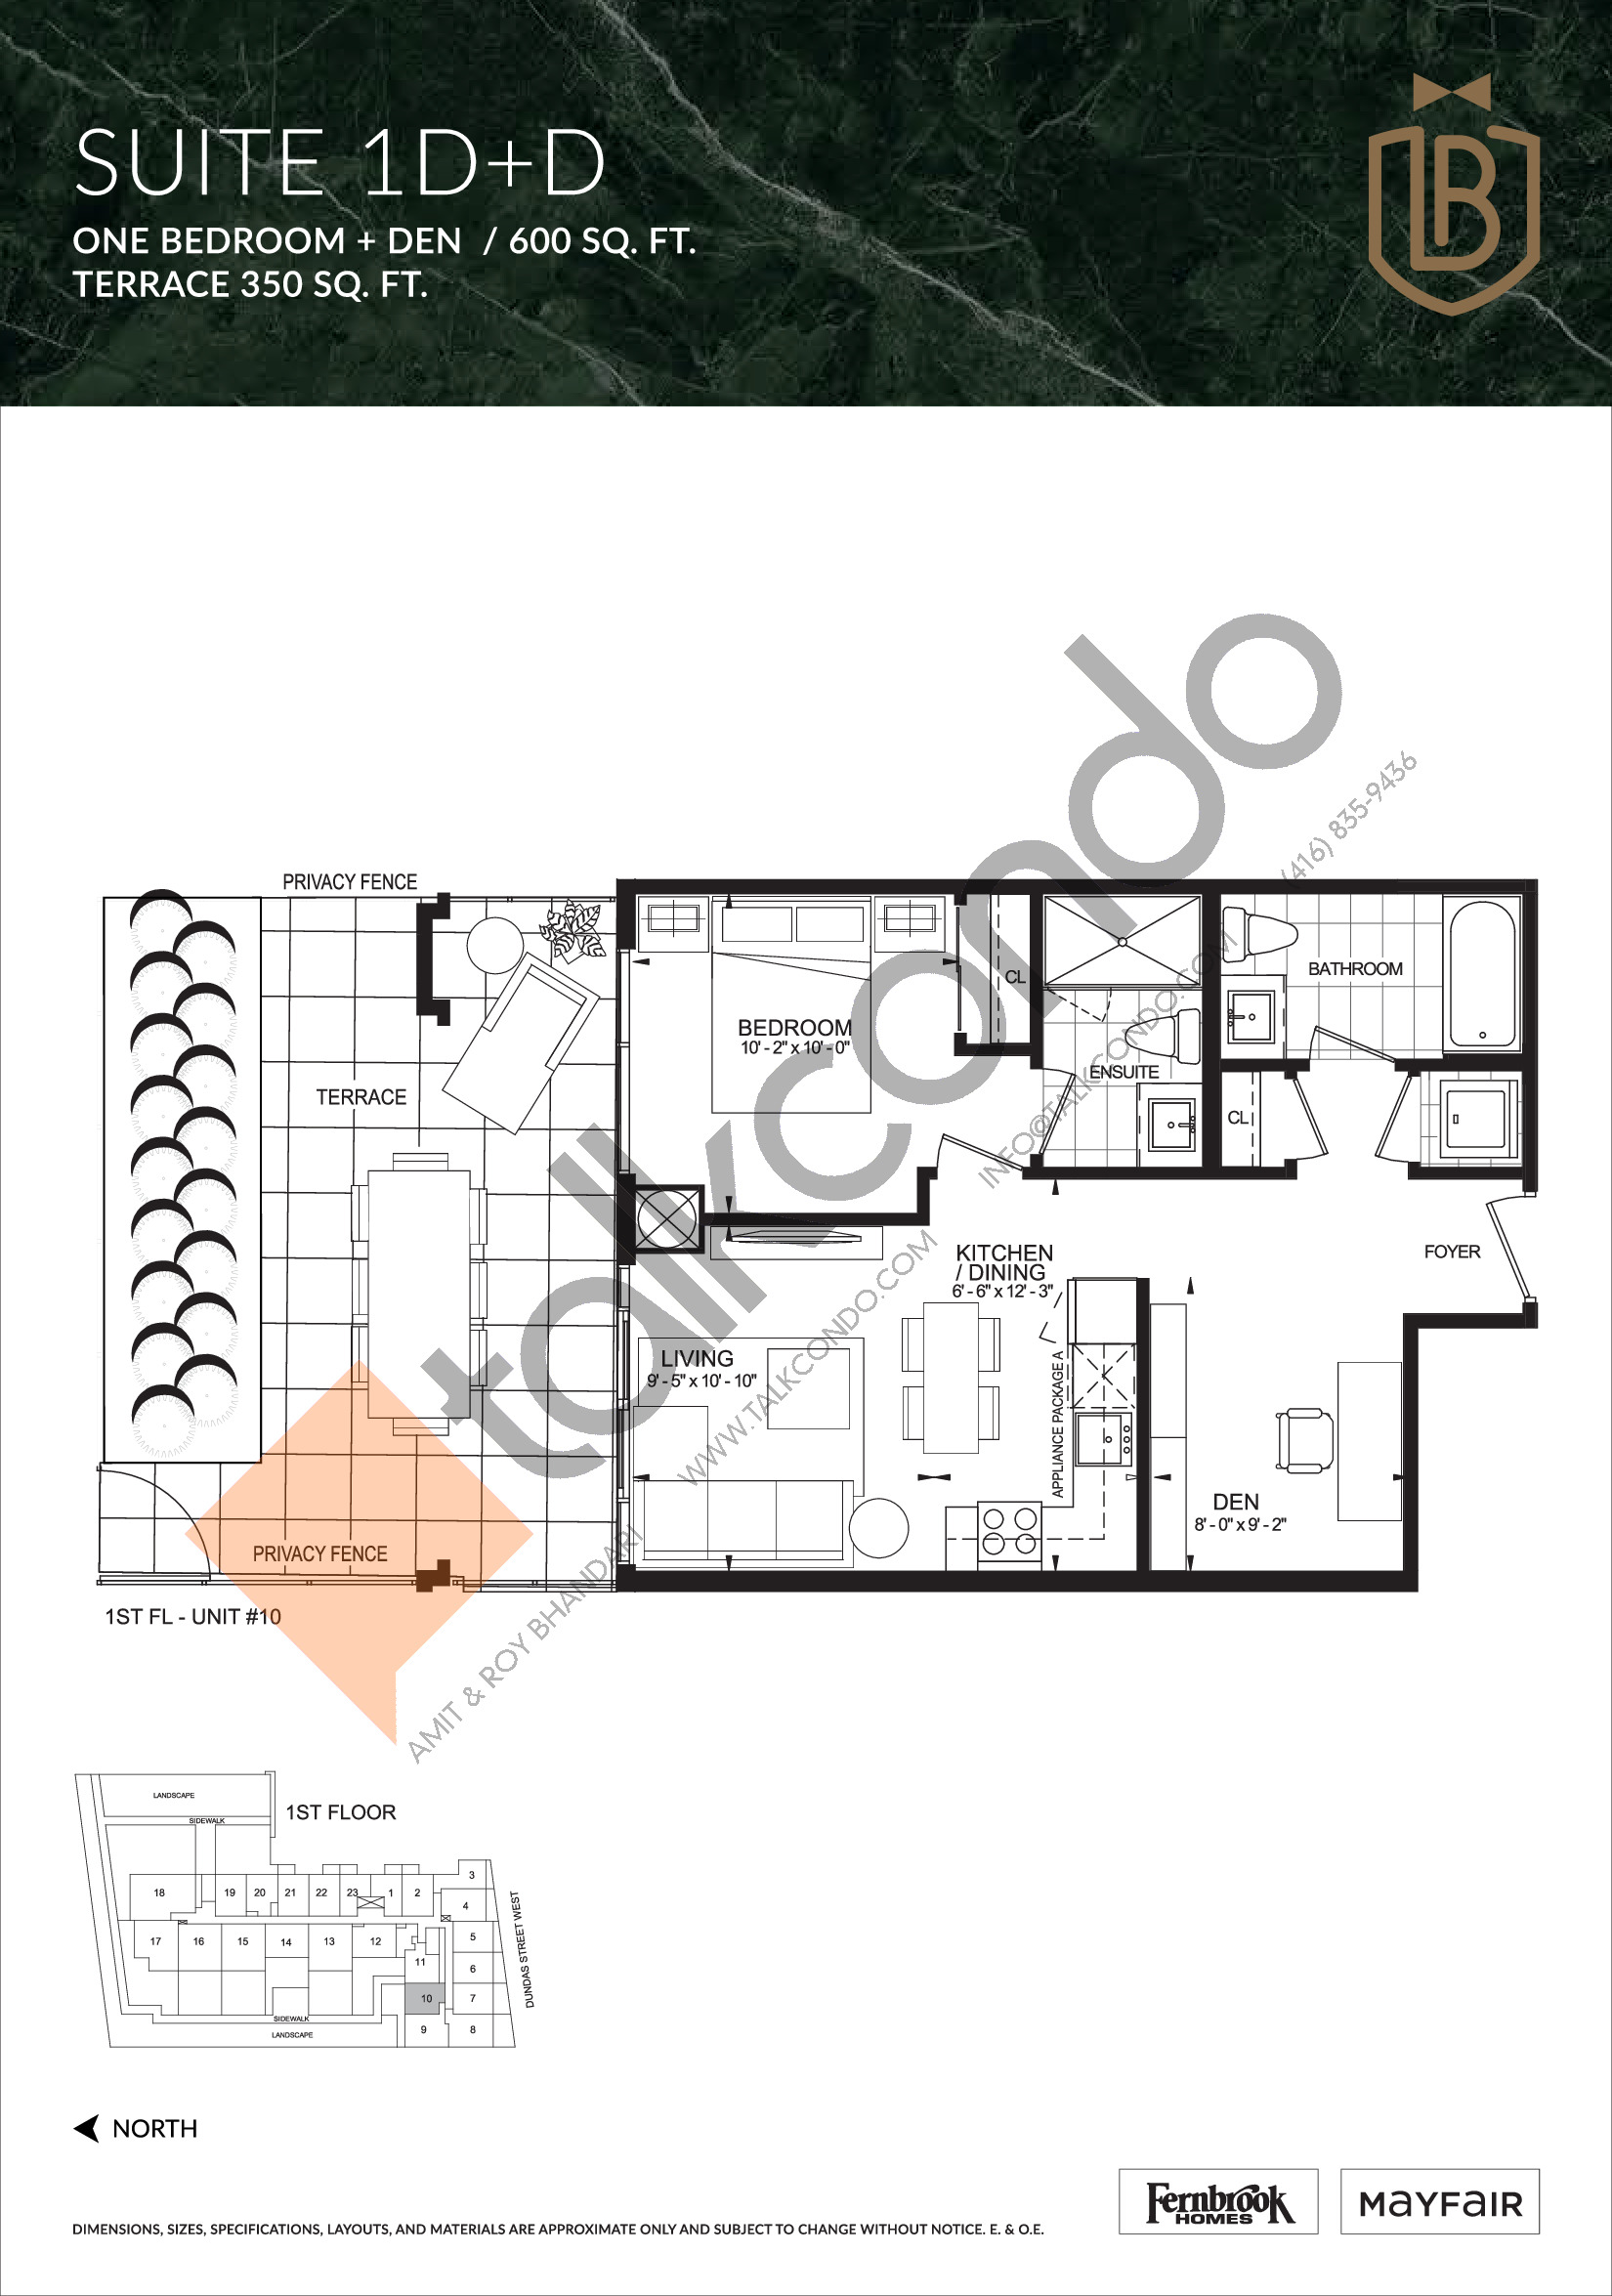 Suite 1D+D (Terrace) Floor Plan at The Butler Condos - 600 sq.ft